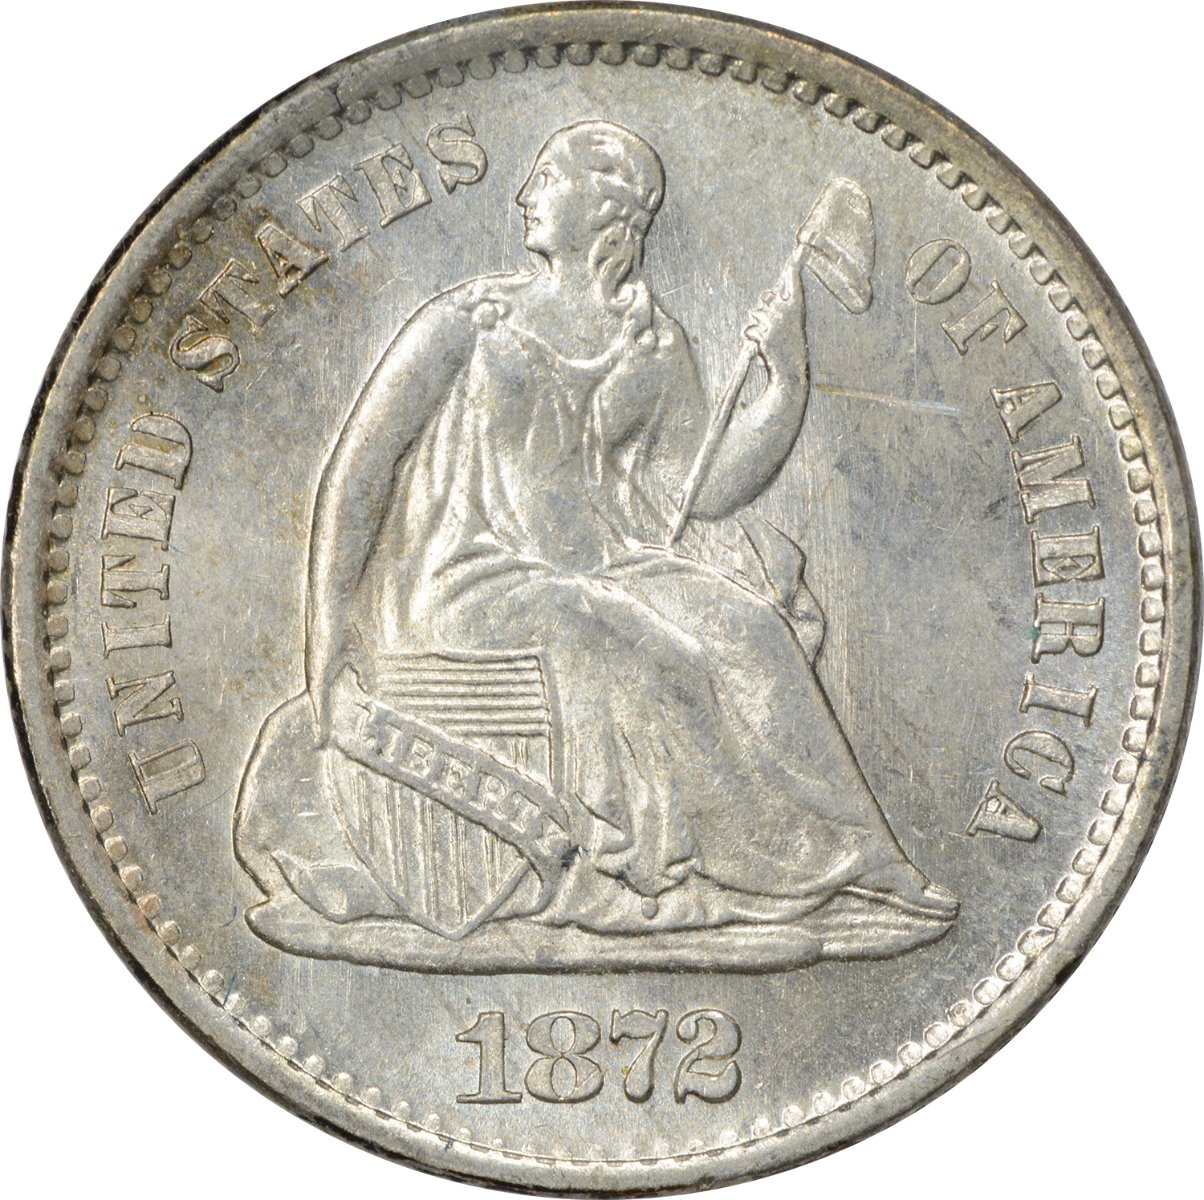 Liberty Seated Silver Half Dimes